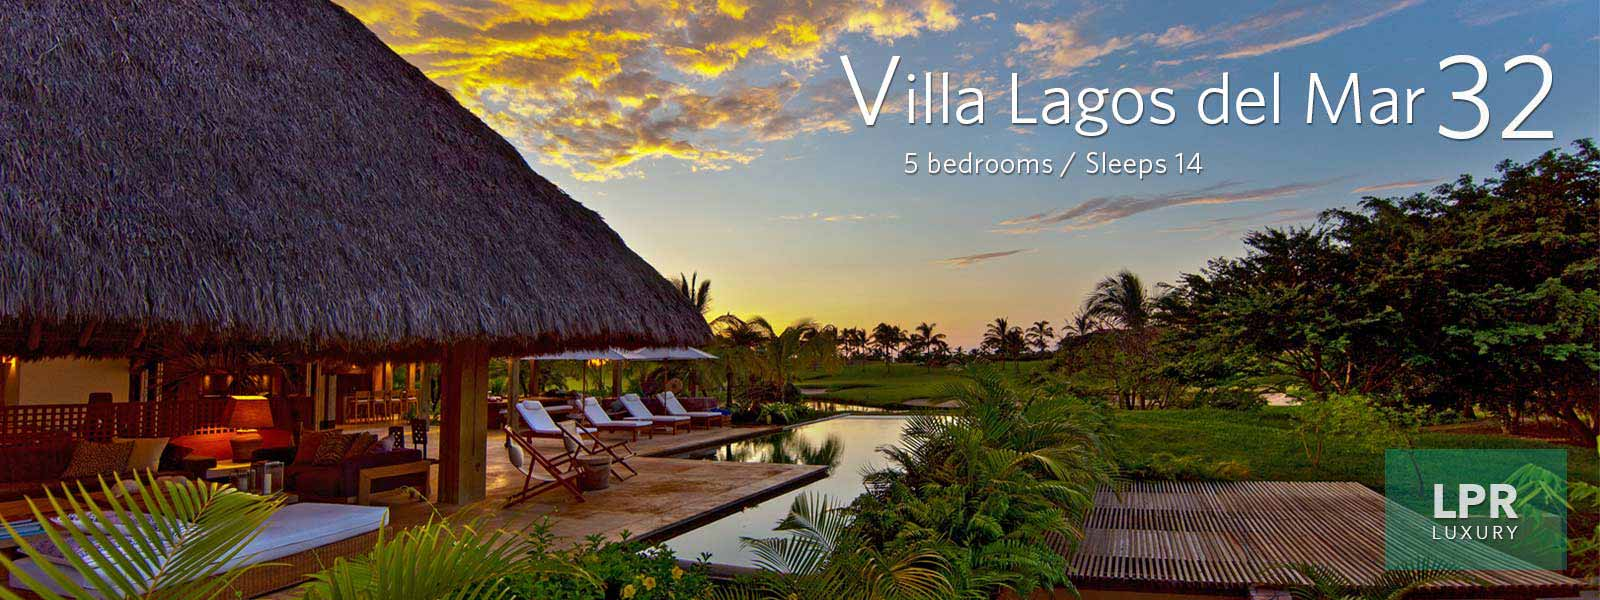 Villa Lagos del Mar 32 - Luxury Punta Mita Rentals and Real Estate - Vallarta | Nayarit, Mexico